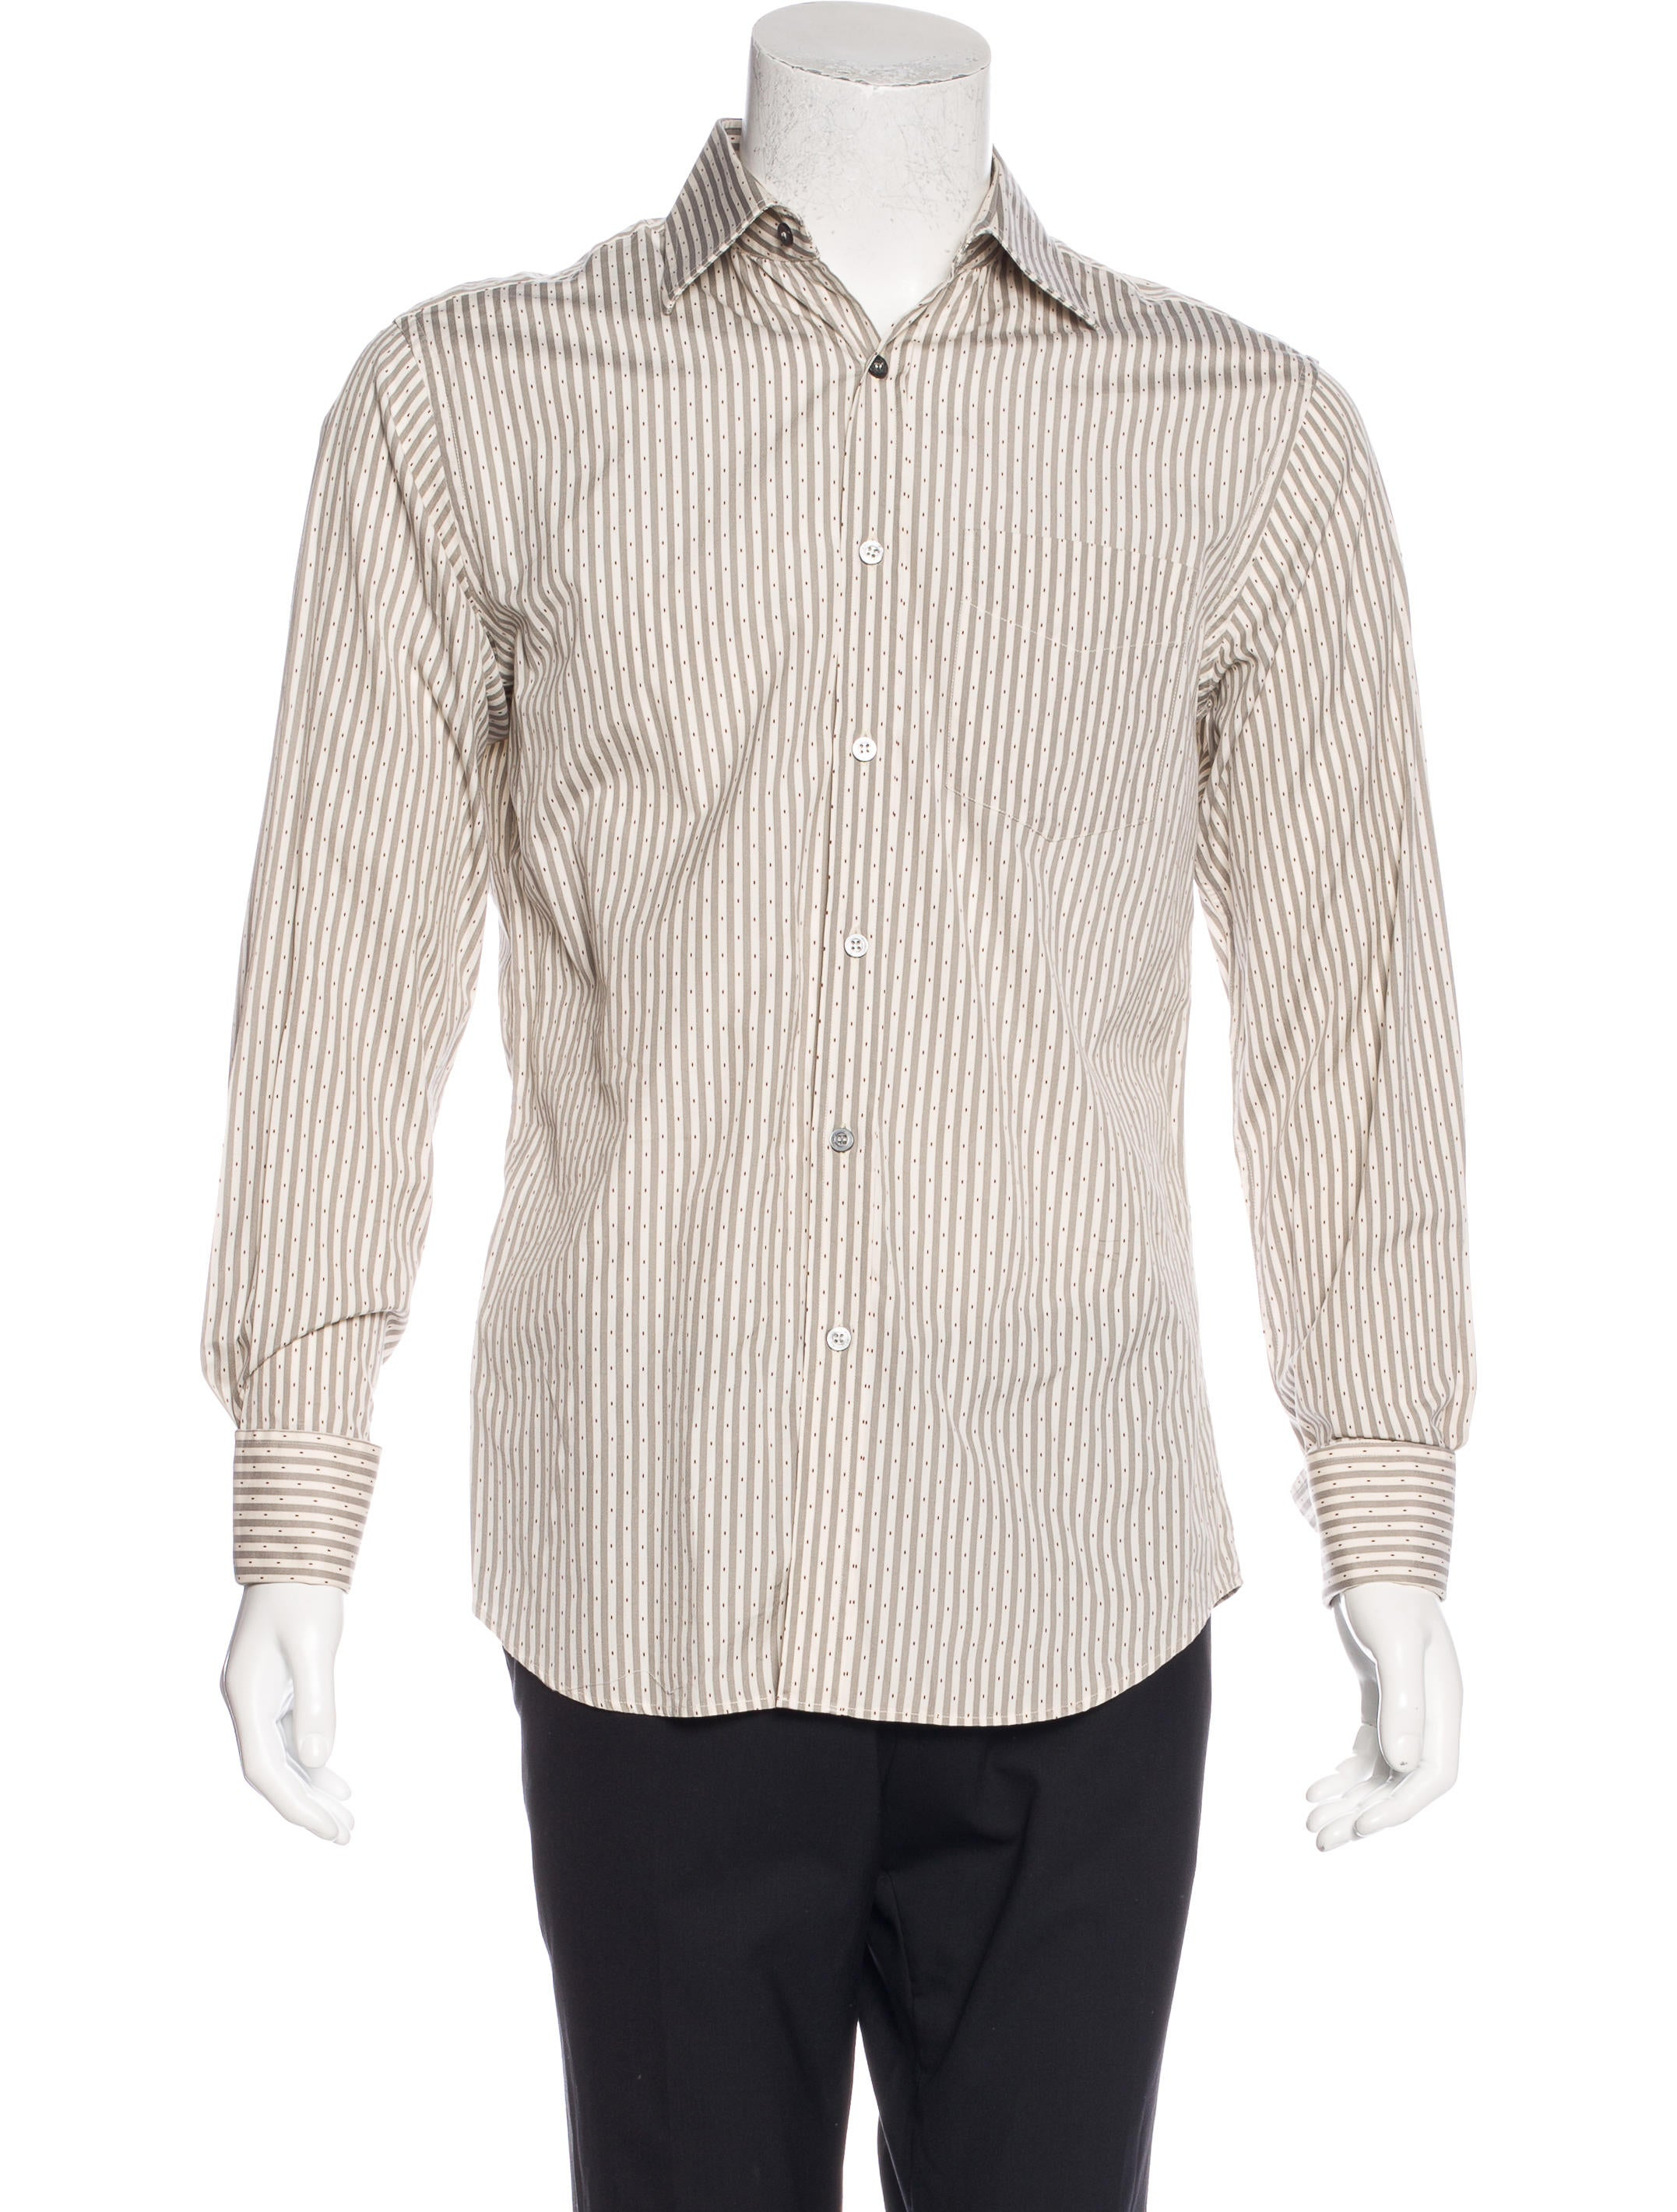 Paul smith striped french cuff shirt clothing wps23773 for What is a french cuff shirt